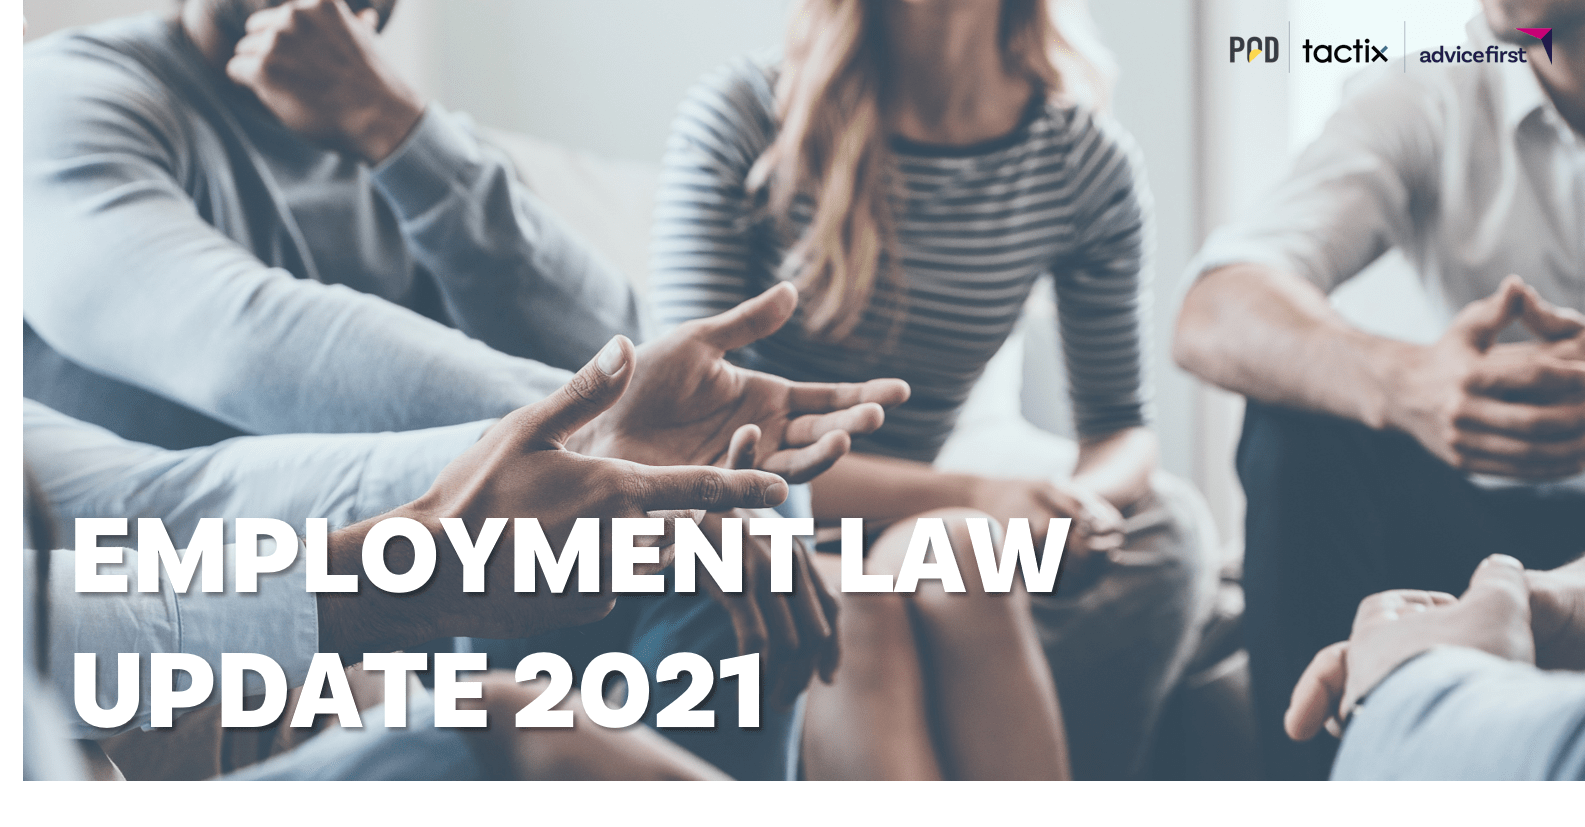 NZ employment law changes in 2021 and other key areas to watch